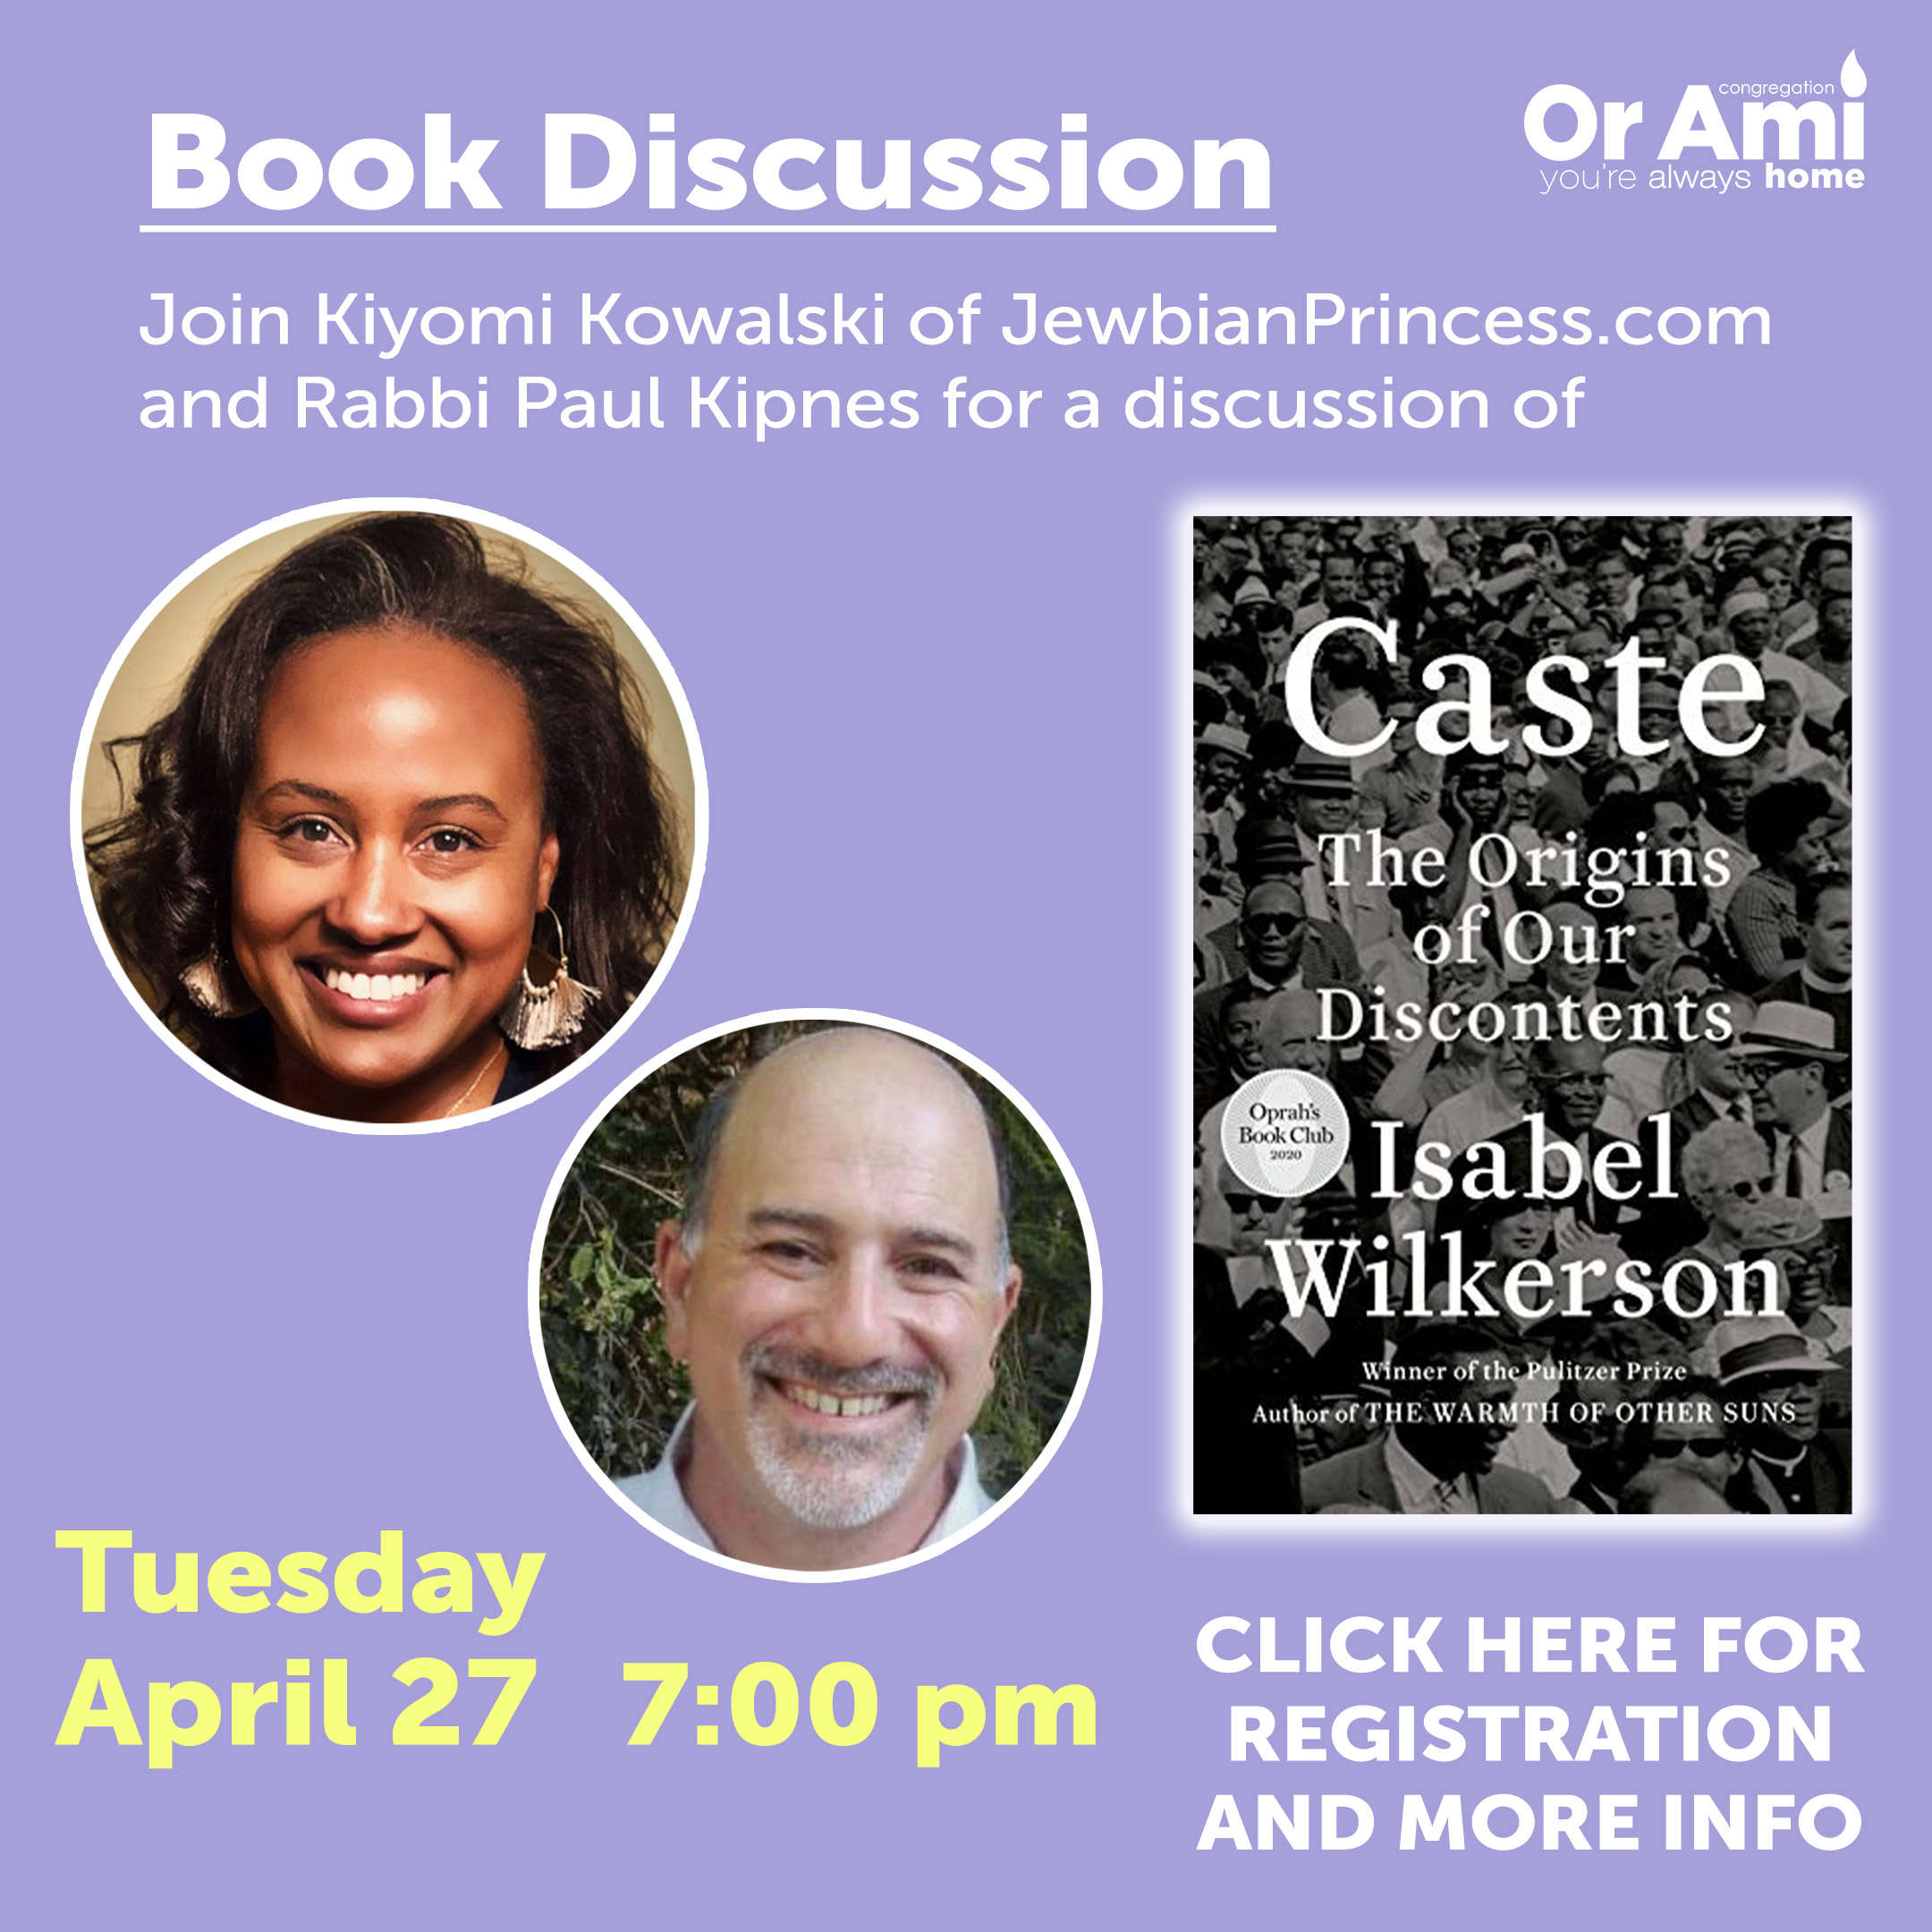 caste book discussion with CLICK